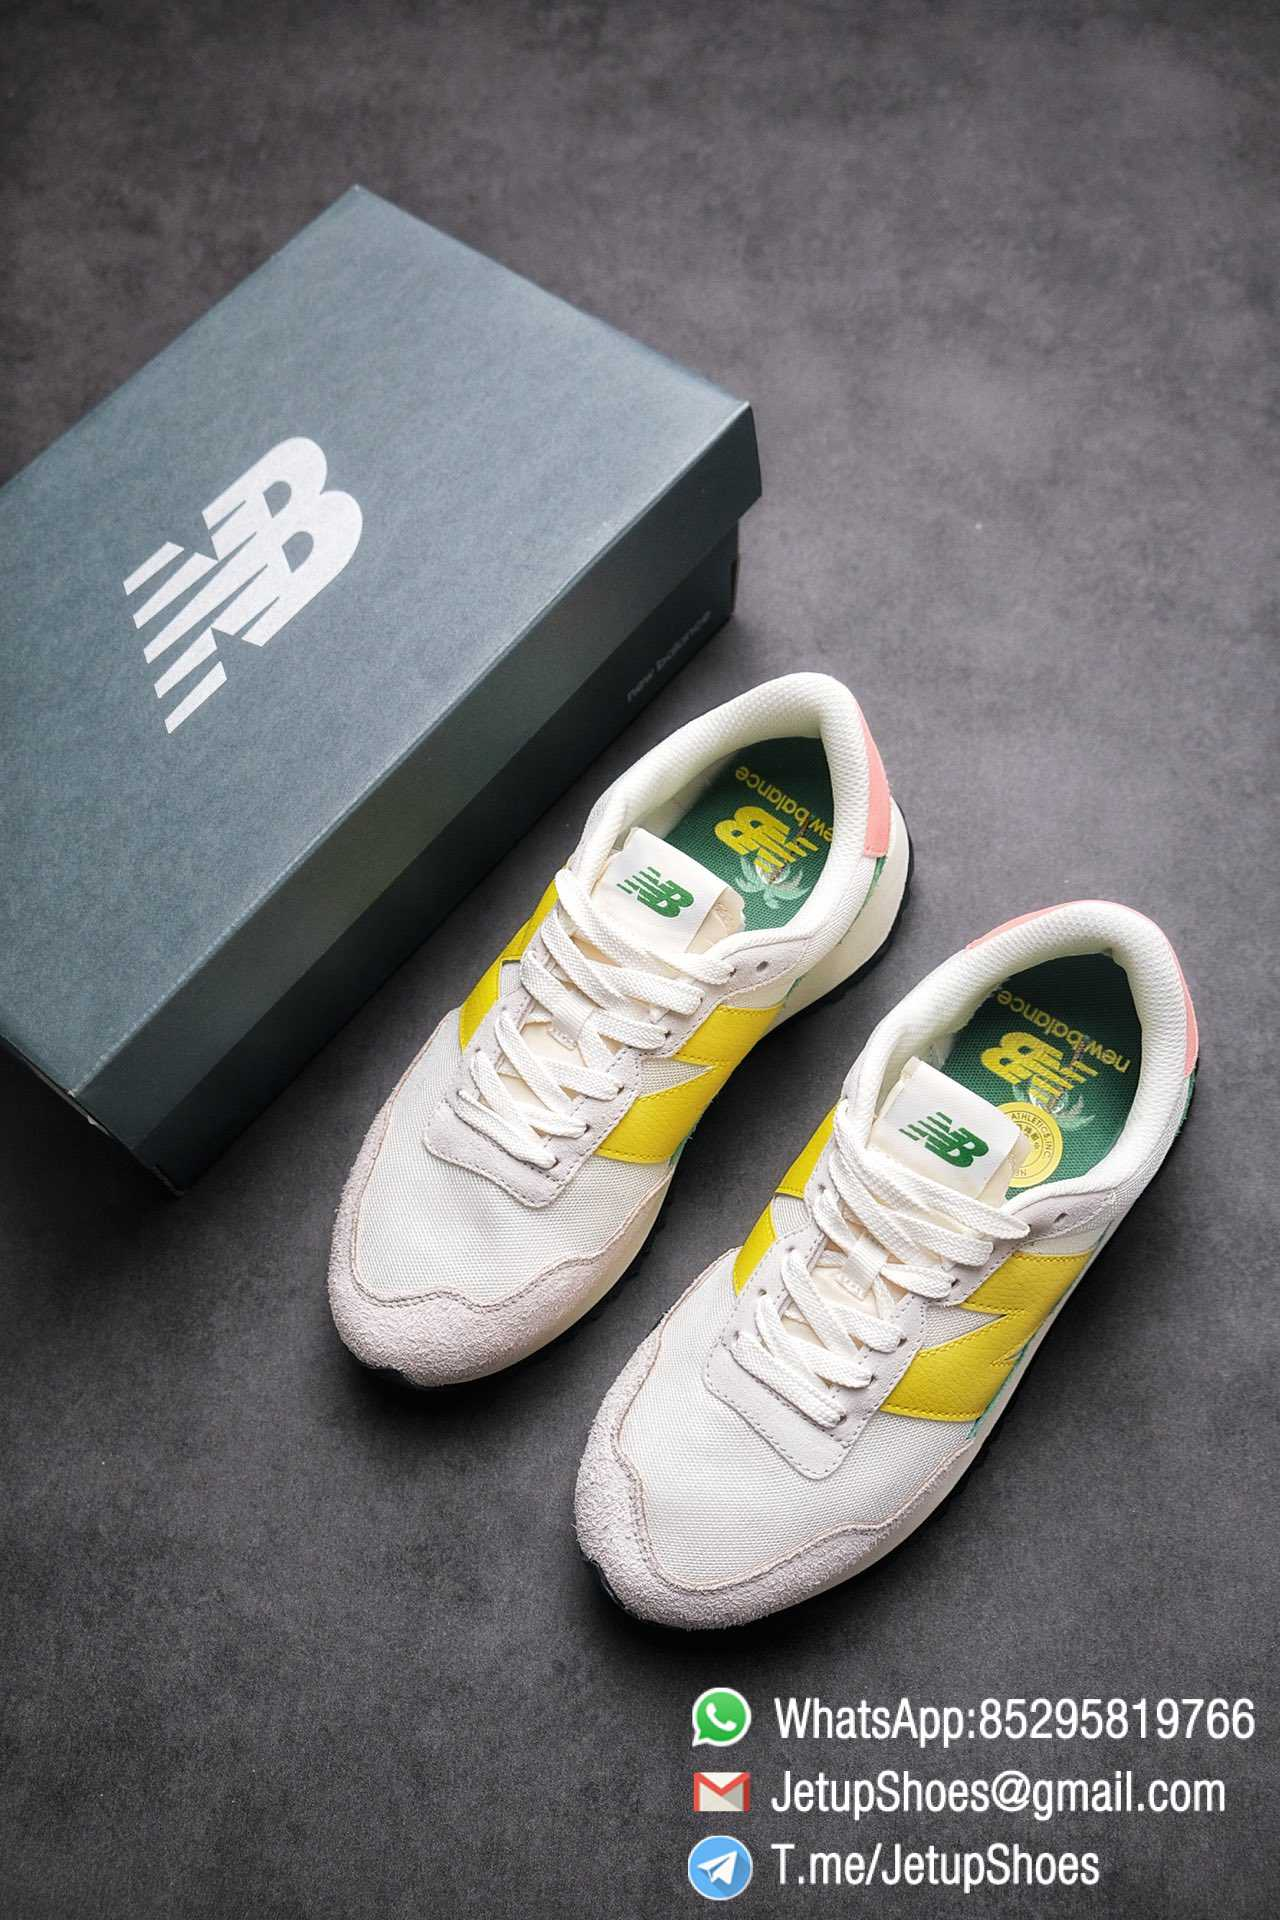 Best Replica New Balance 237 Light Grey Yellow Green Pink Multi Color SKU MS237AS1 High Quality Running Shoes 04